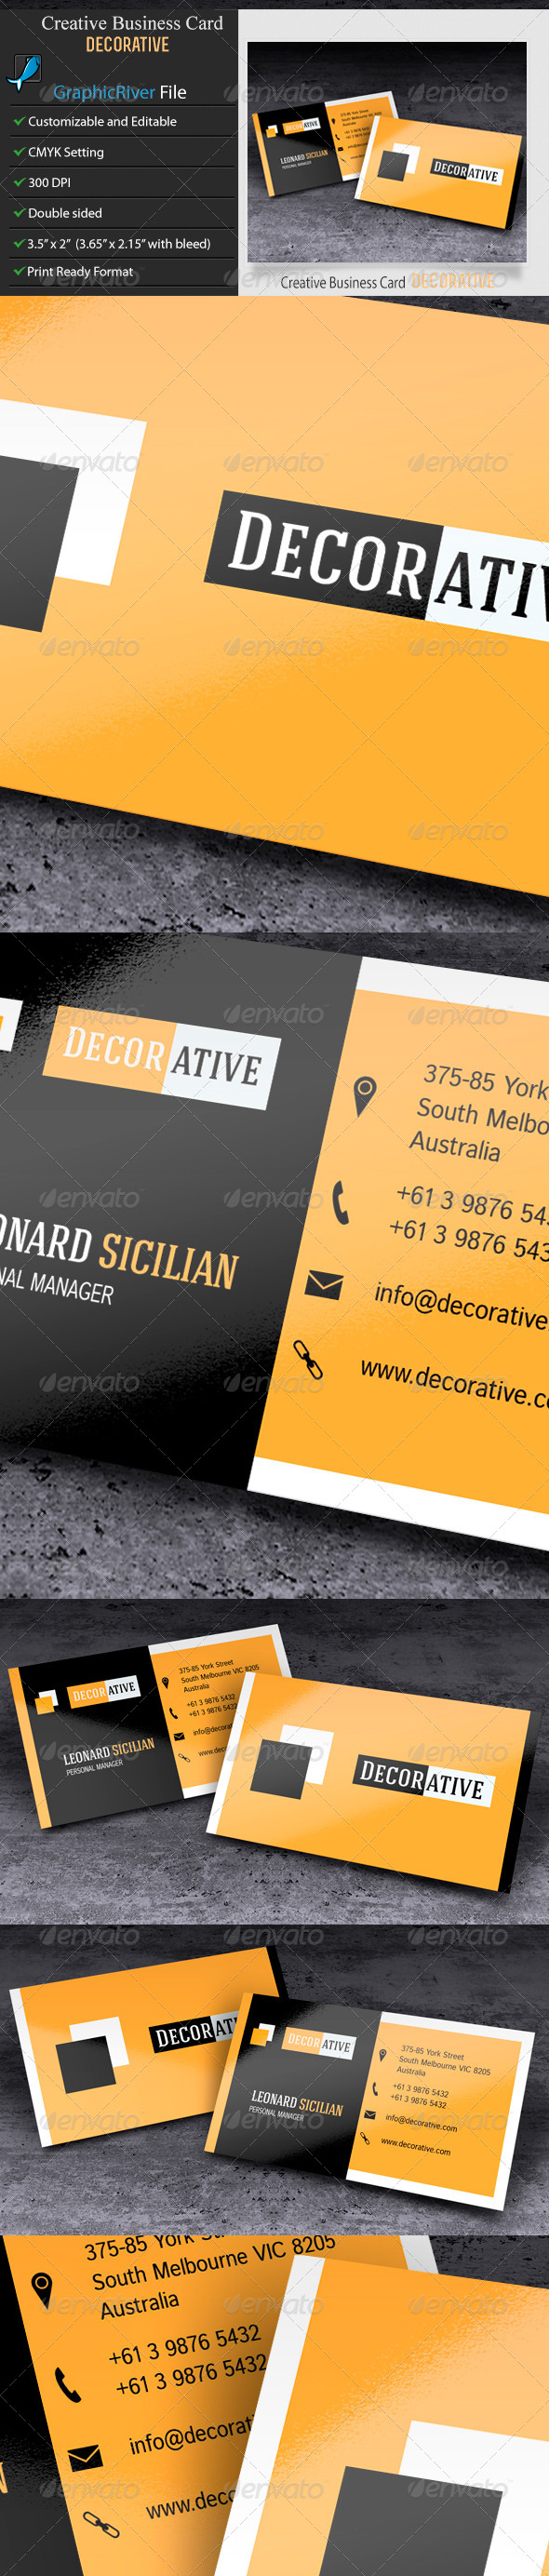 GraphicRiver Creative or Corporate Business Card-Decorative 6487230